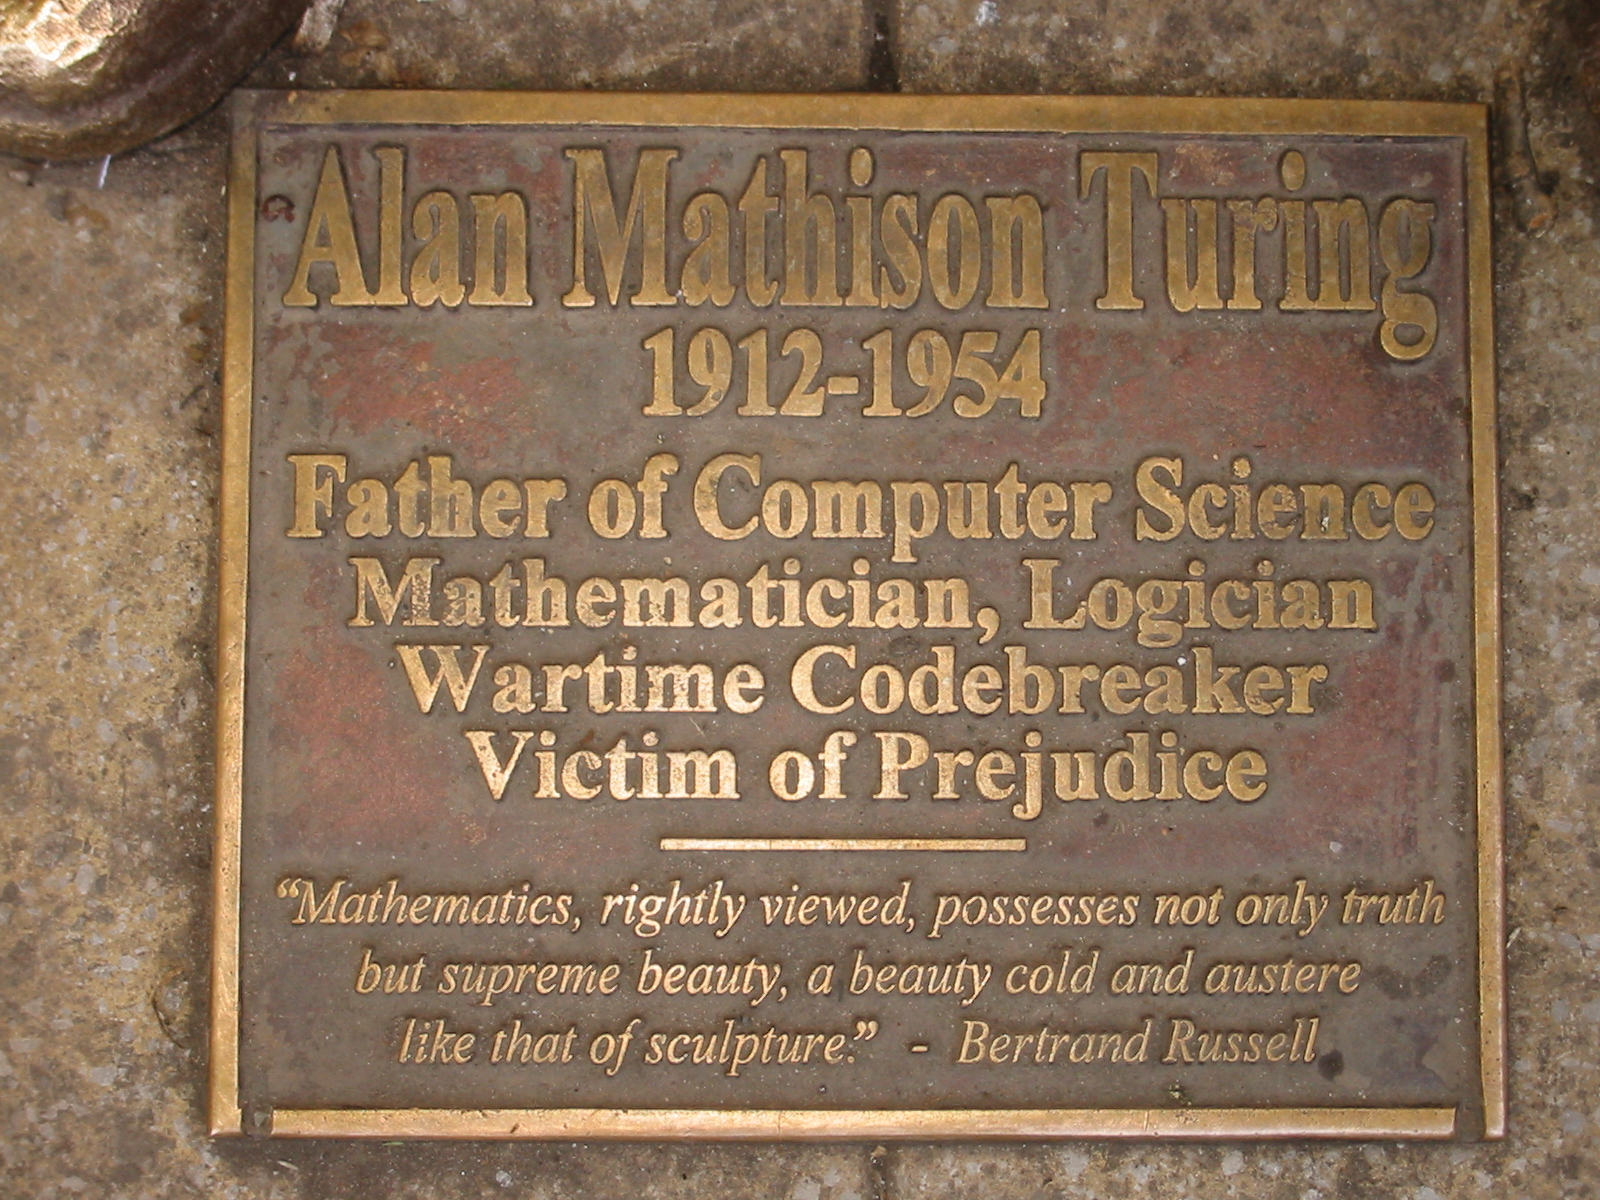 Alan_Turing_plaque